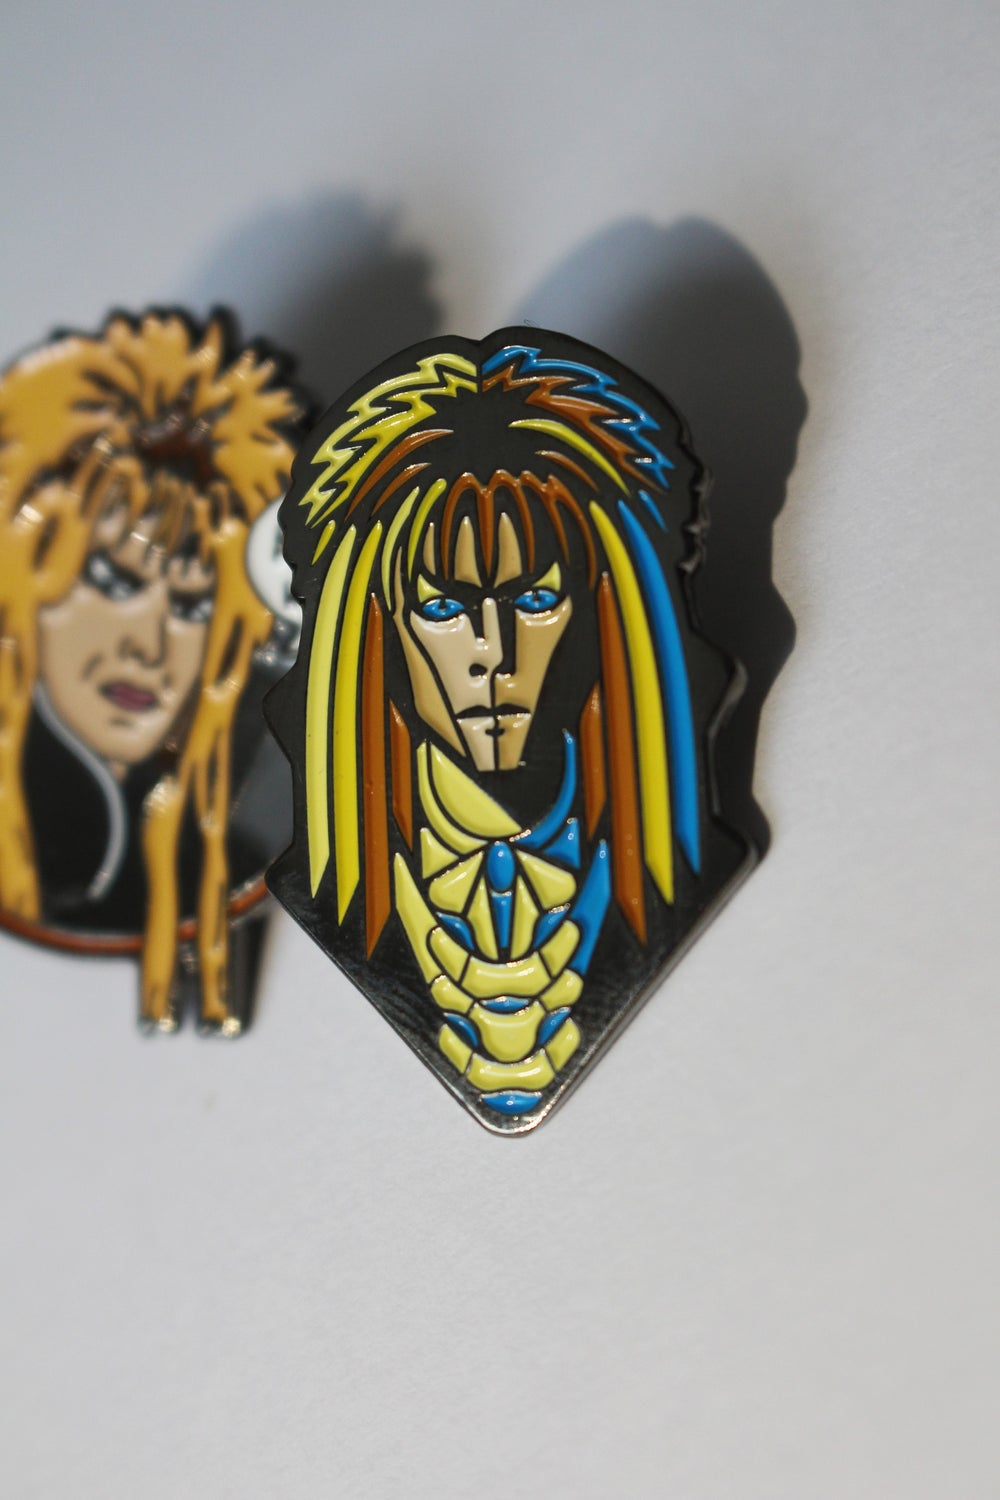 Labyrinth Jareth The Goblin King (Badges Duo Set)